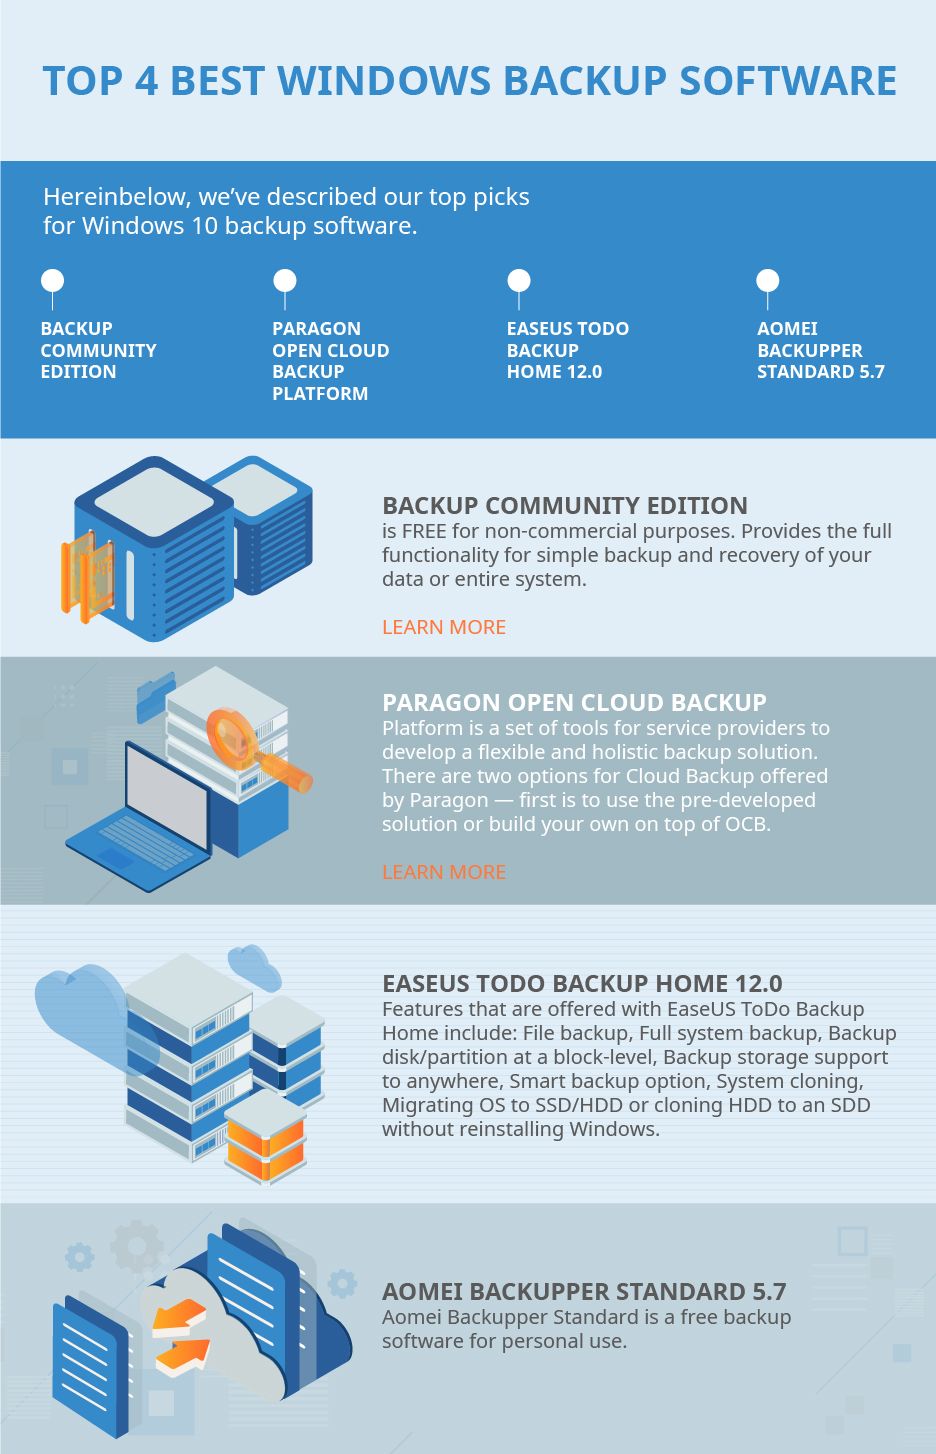 Top 4 backup solution providers